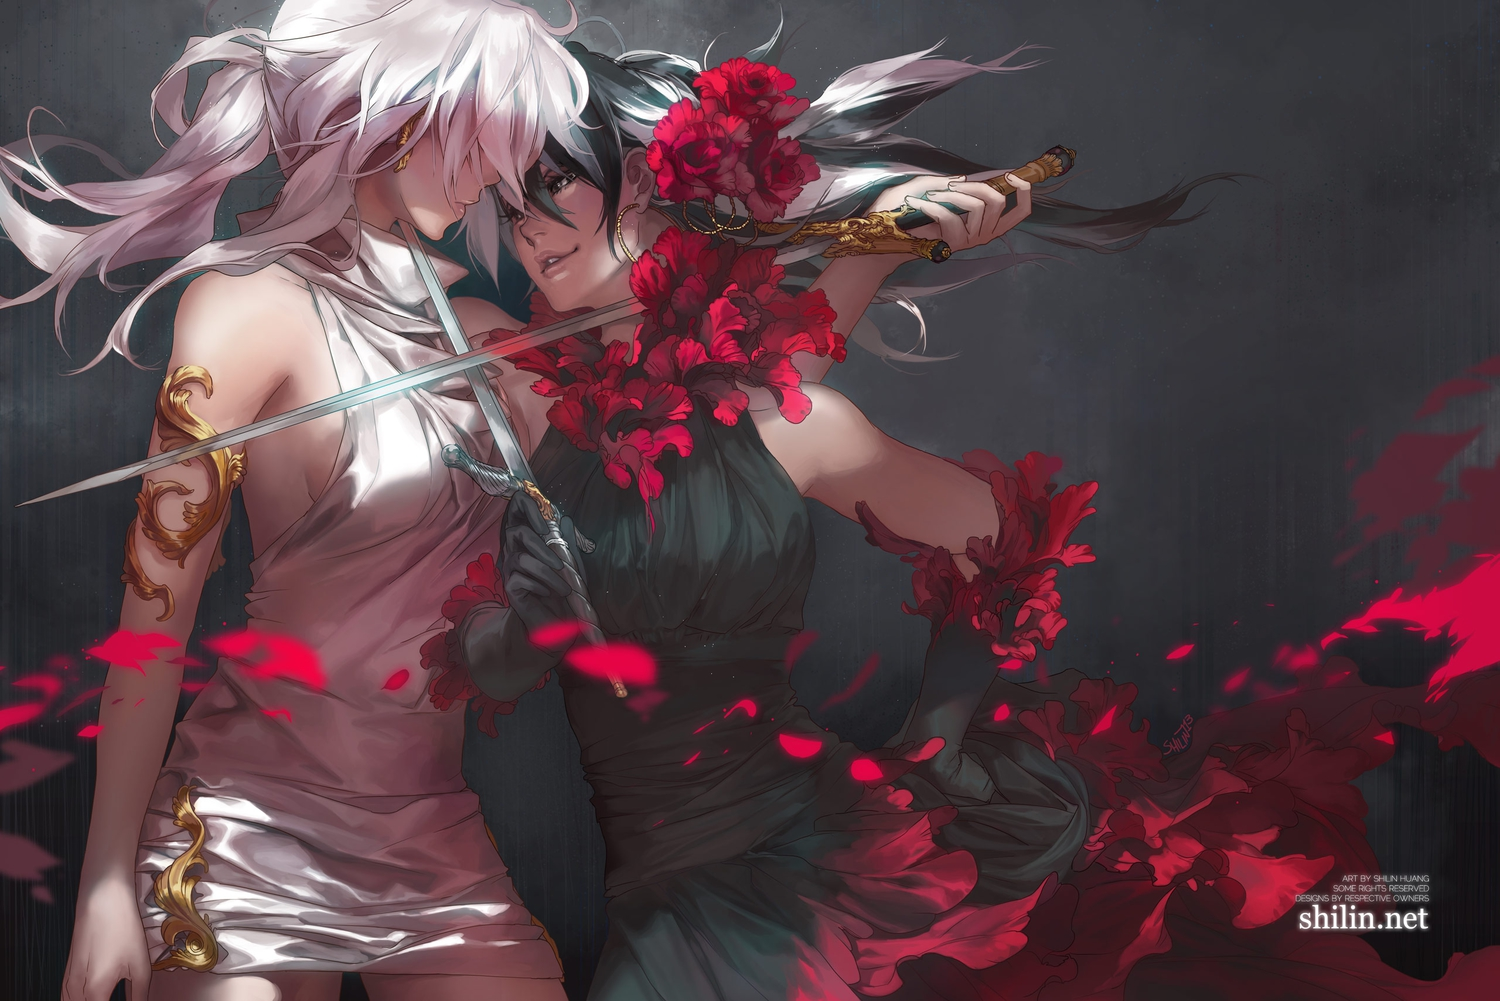 2girls black_hair carciphona dress elbow_gloves flowers gloves shilin shoujo_ai sword watermark weapon white_hair